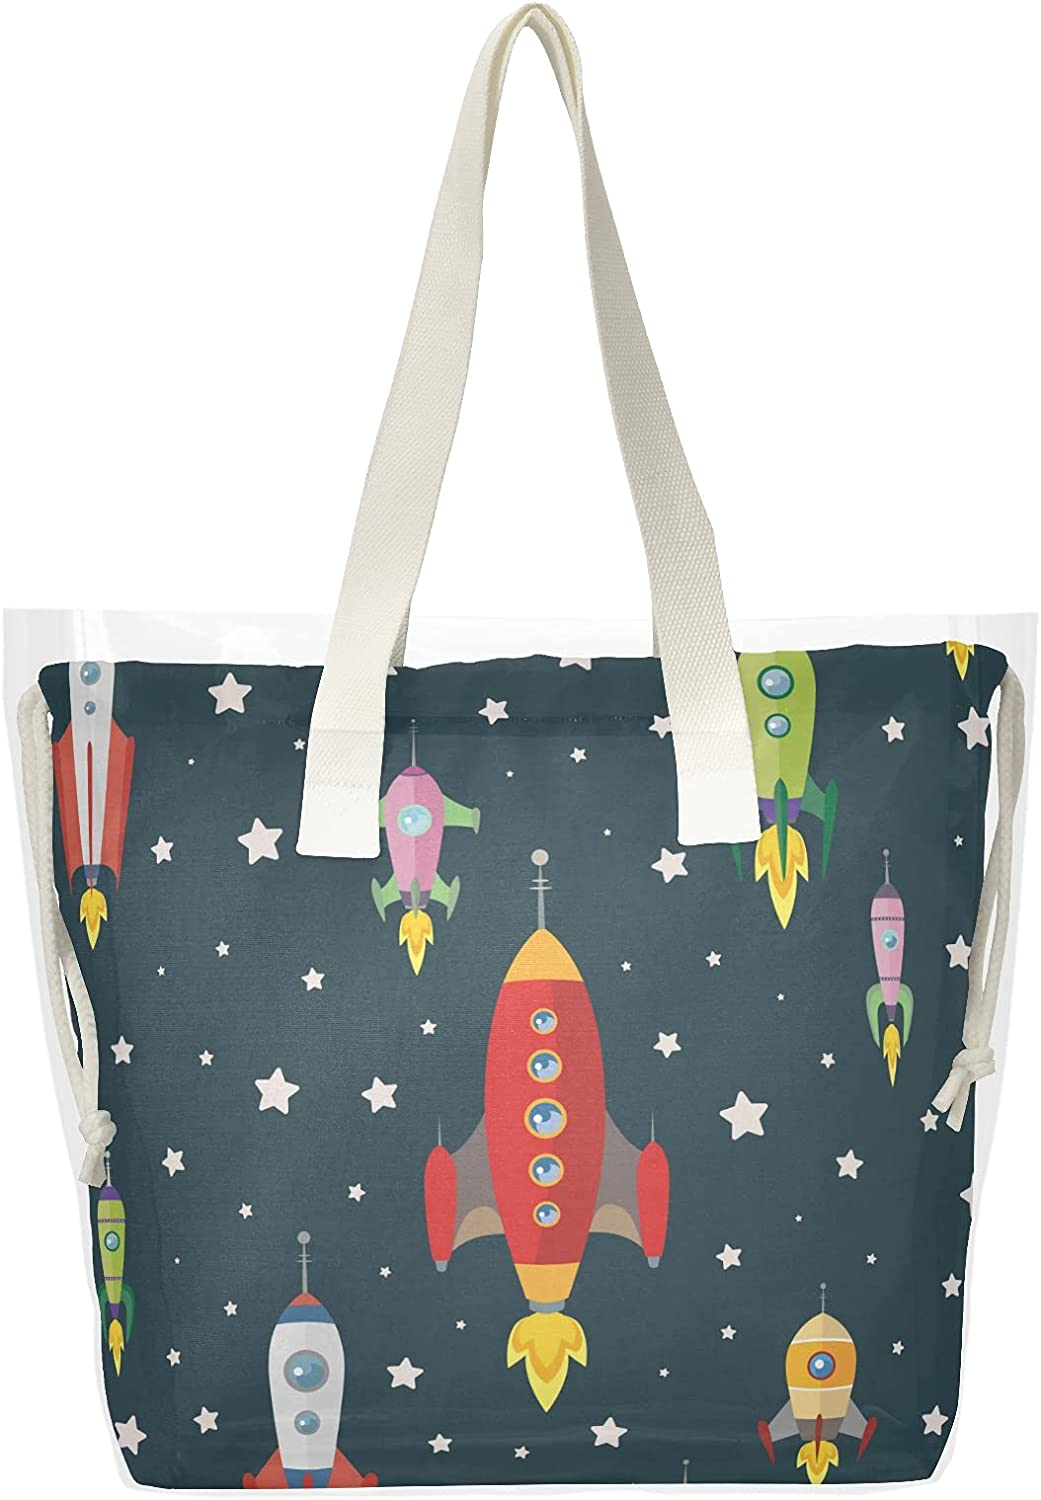 Plane Limited Special Price Popularity {5} Women Clear Tote Bags Bag Handbag Shoulder Beach H Top